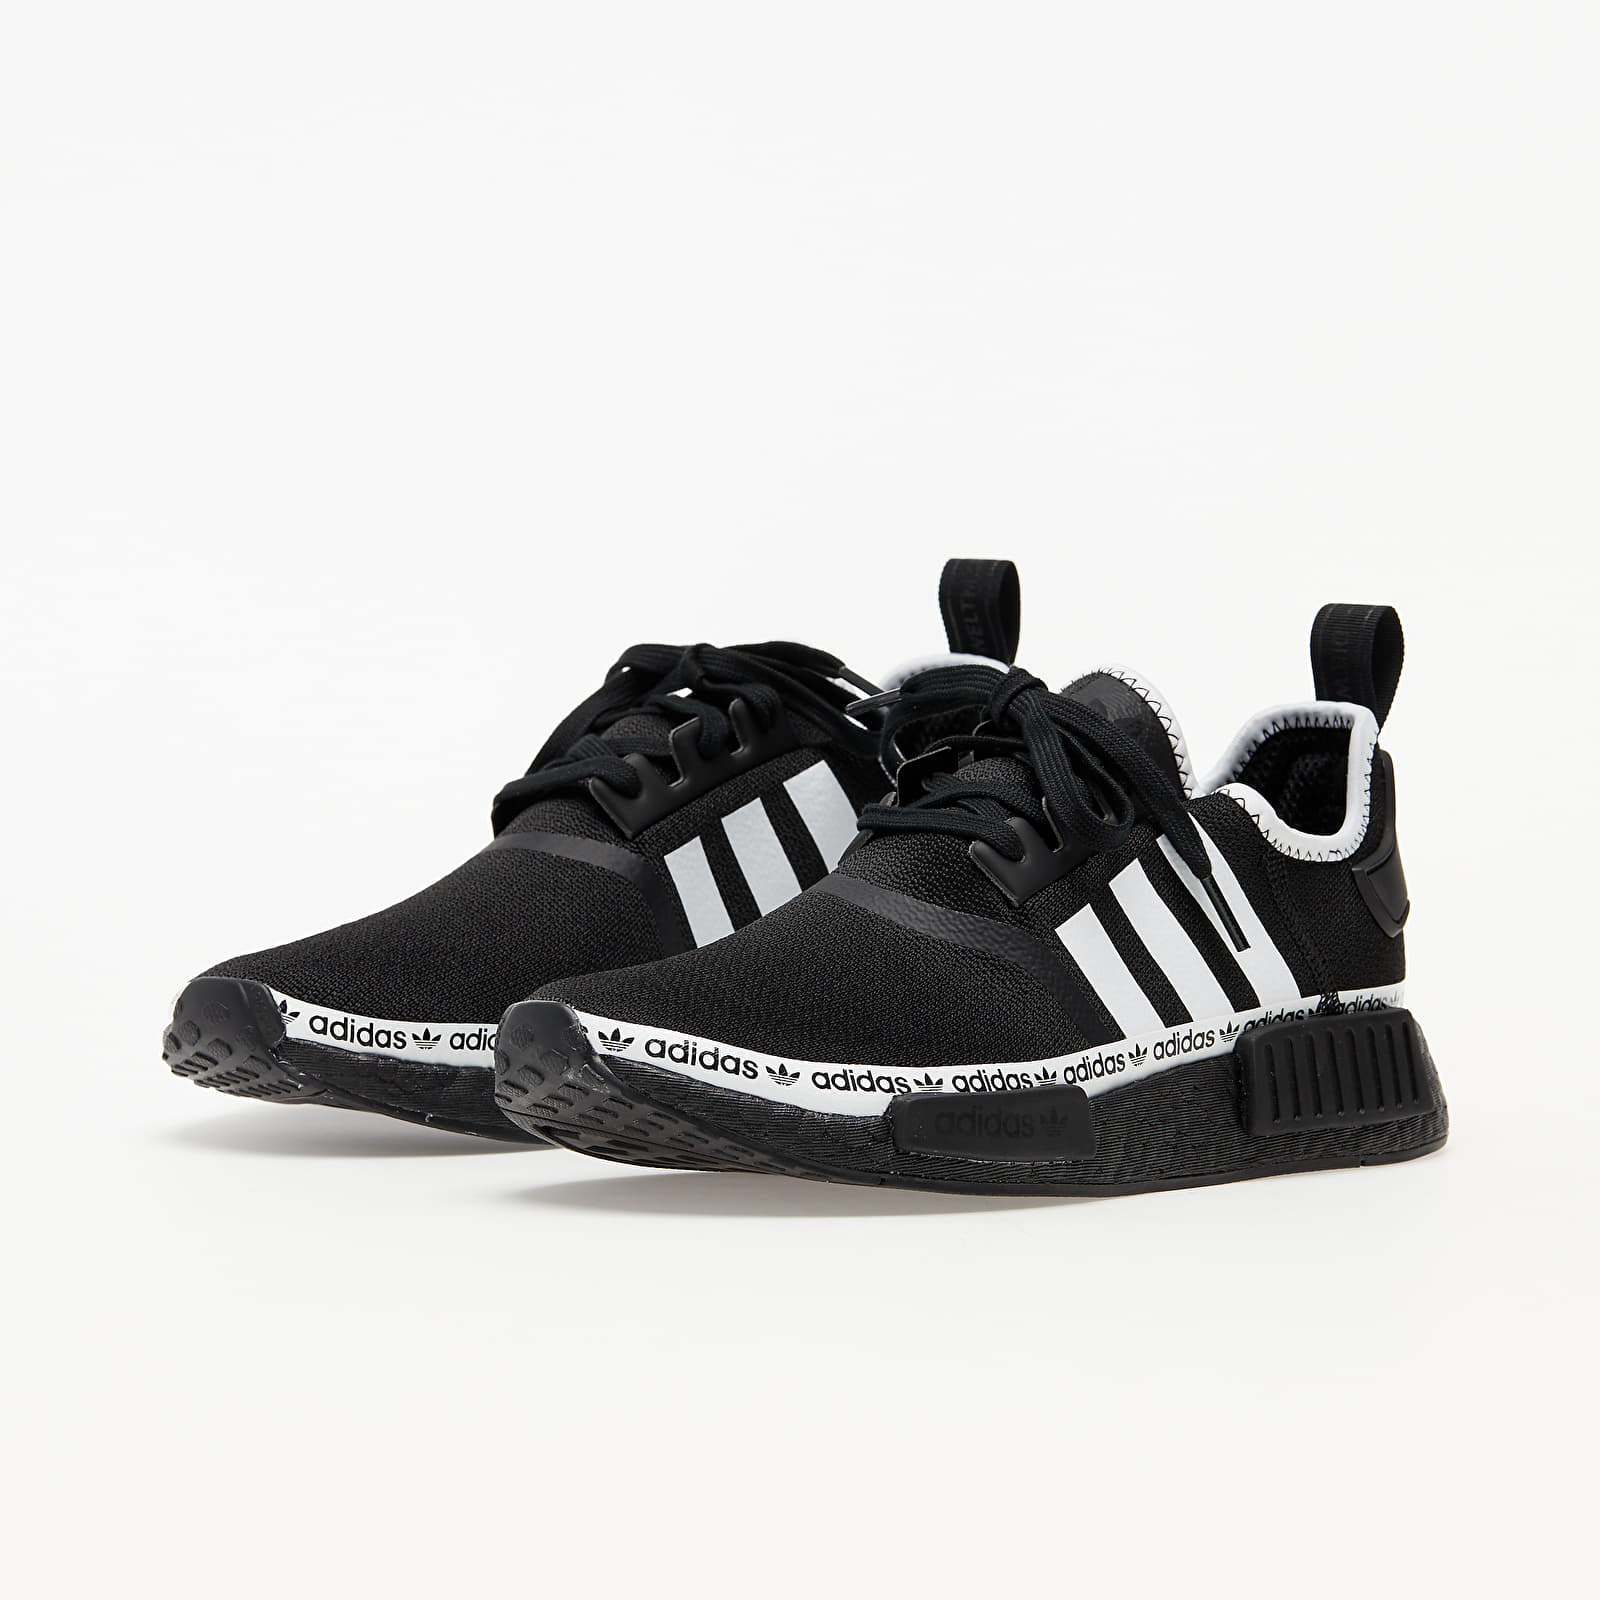 adidas NMD_R1 Core Black/ Ftw White/ Ftw White EUR 43 1/3